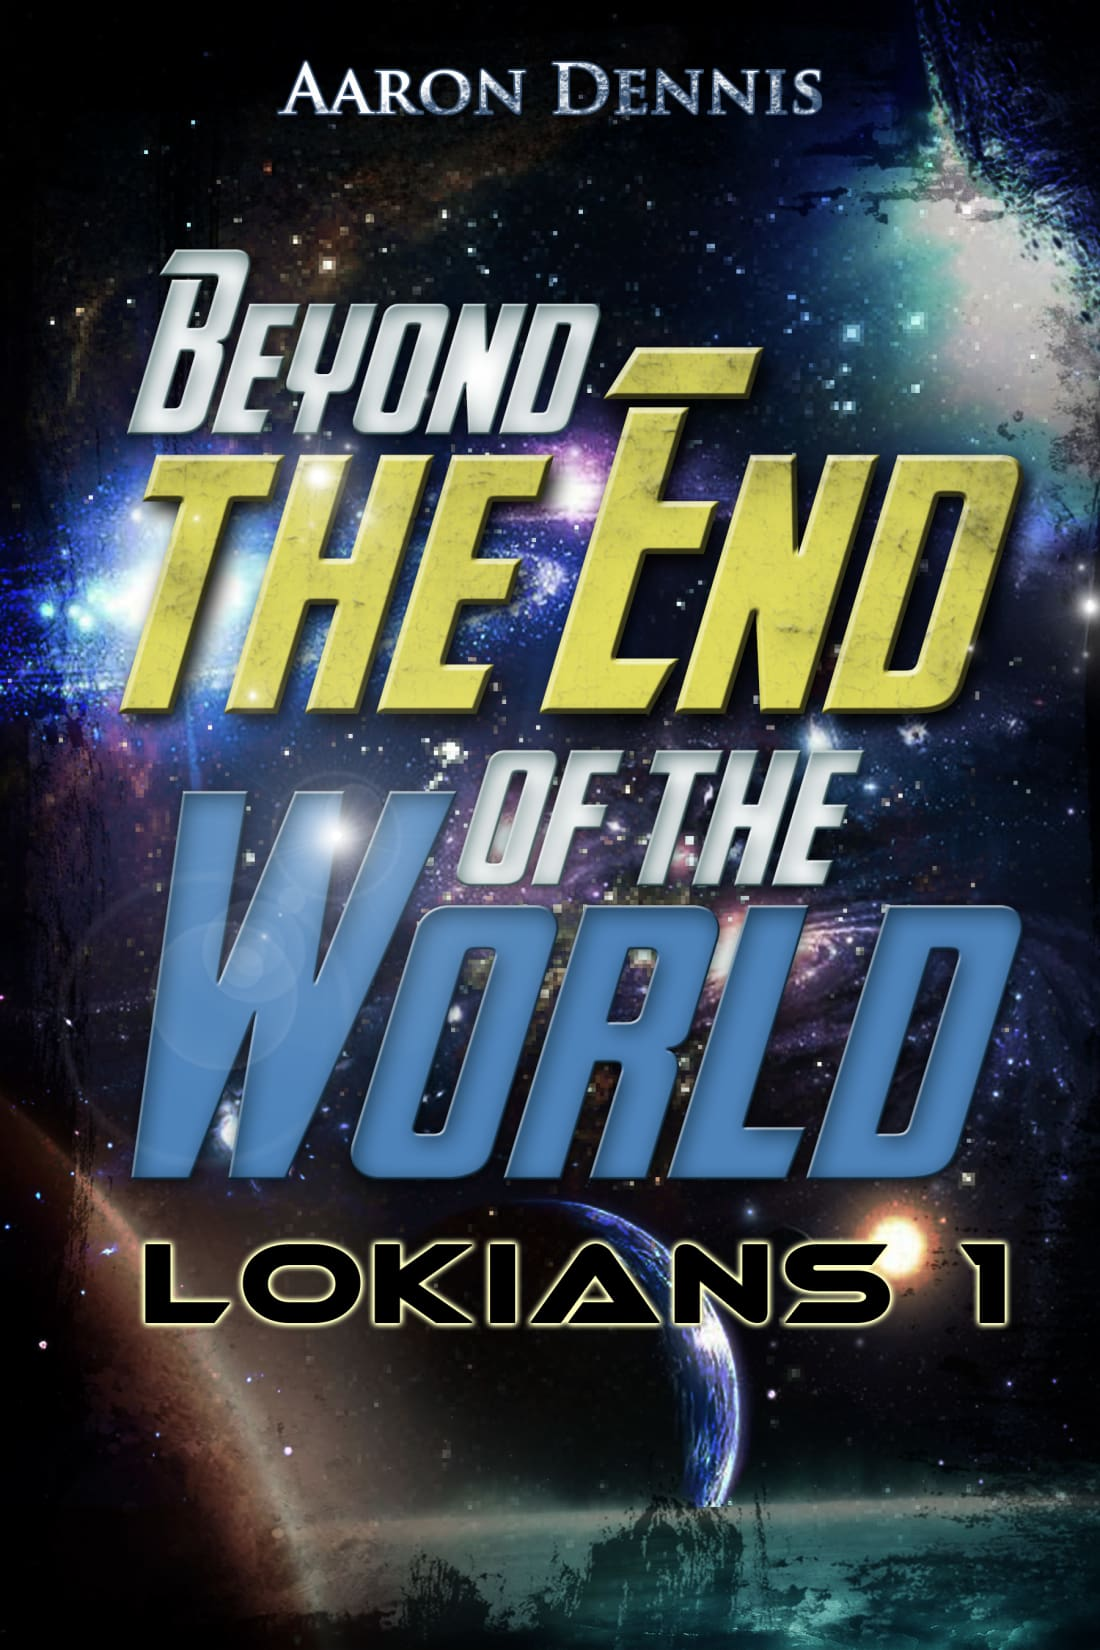 Part 12 of Beyond the End of the World, Lokians 1